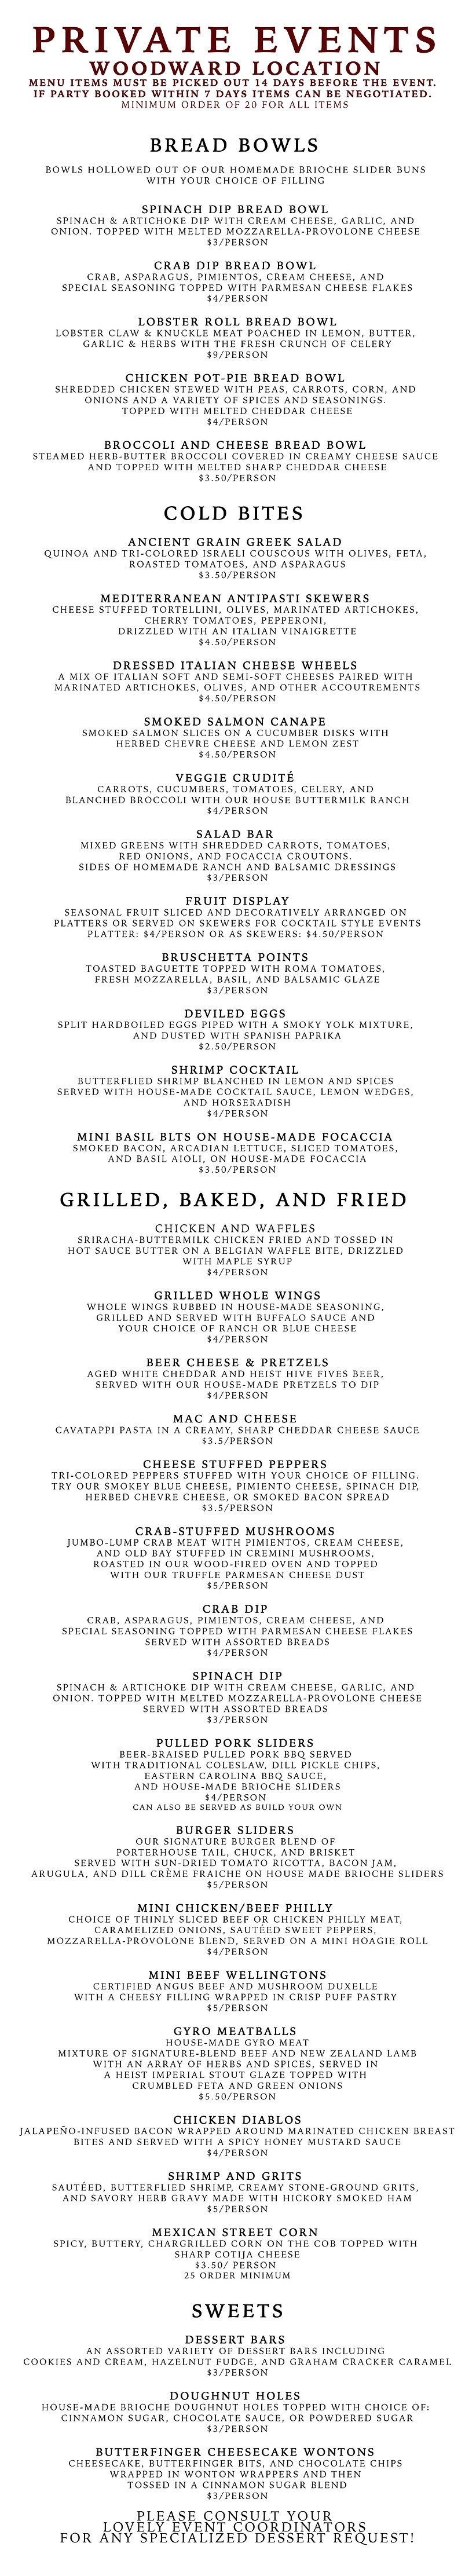 Heist_Brewery_Catering_Menu_Woodward 2-2